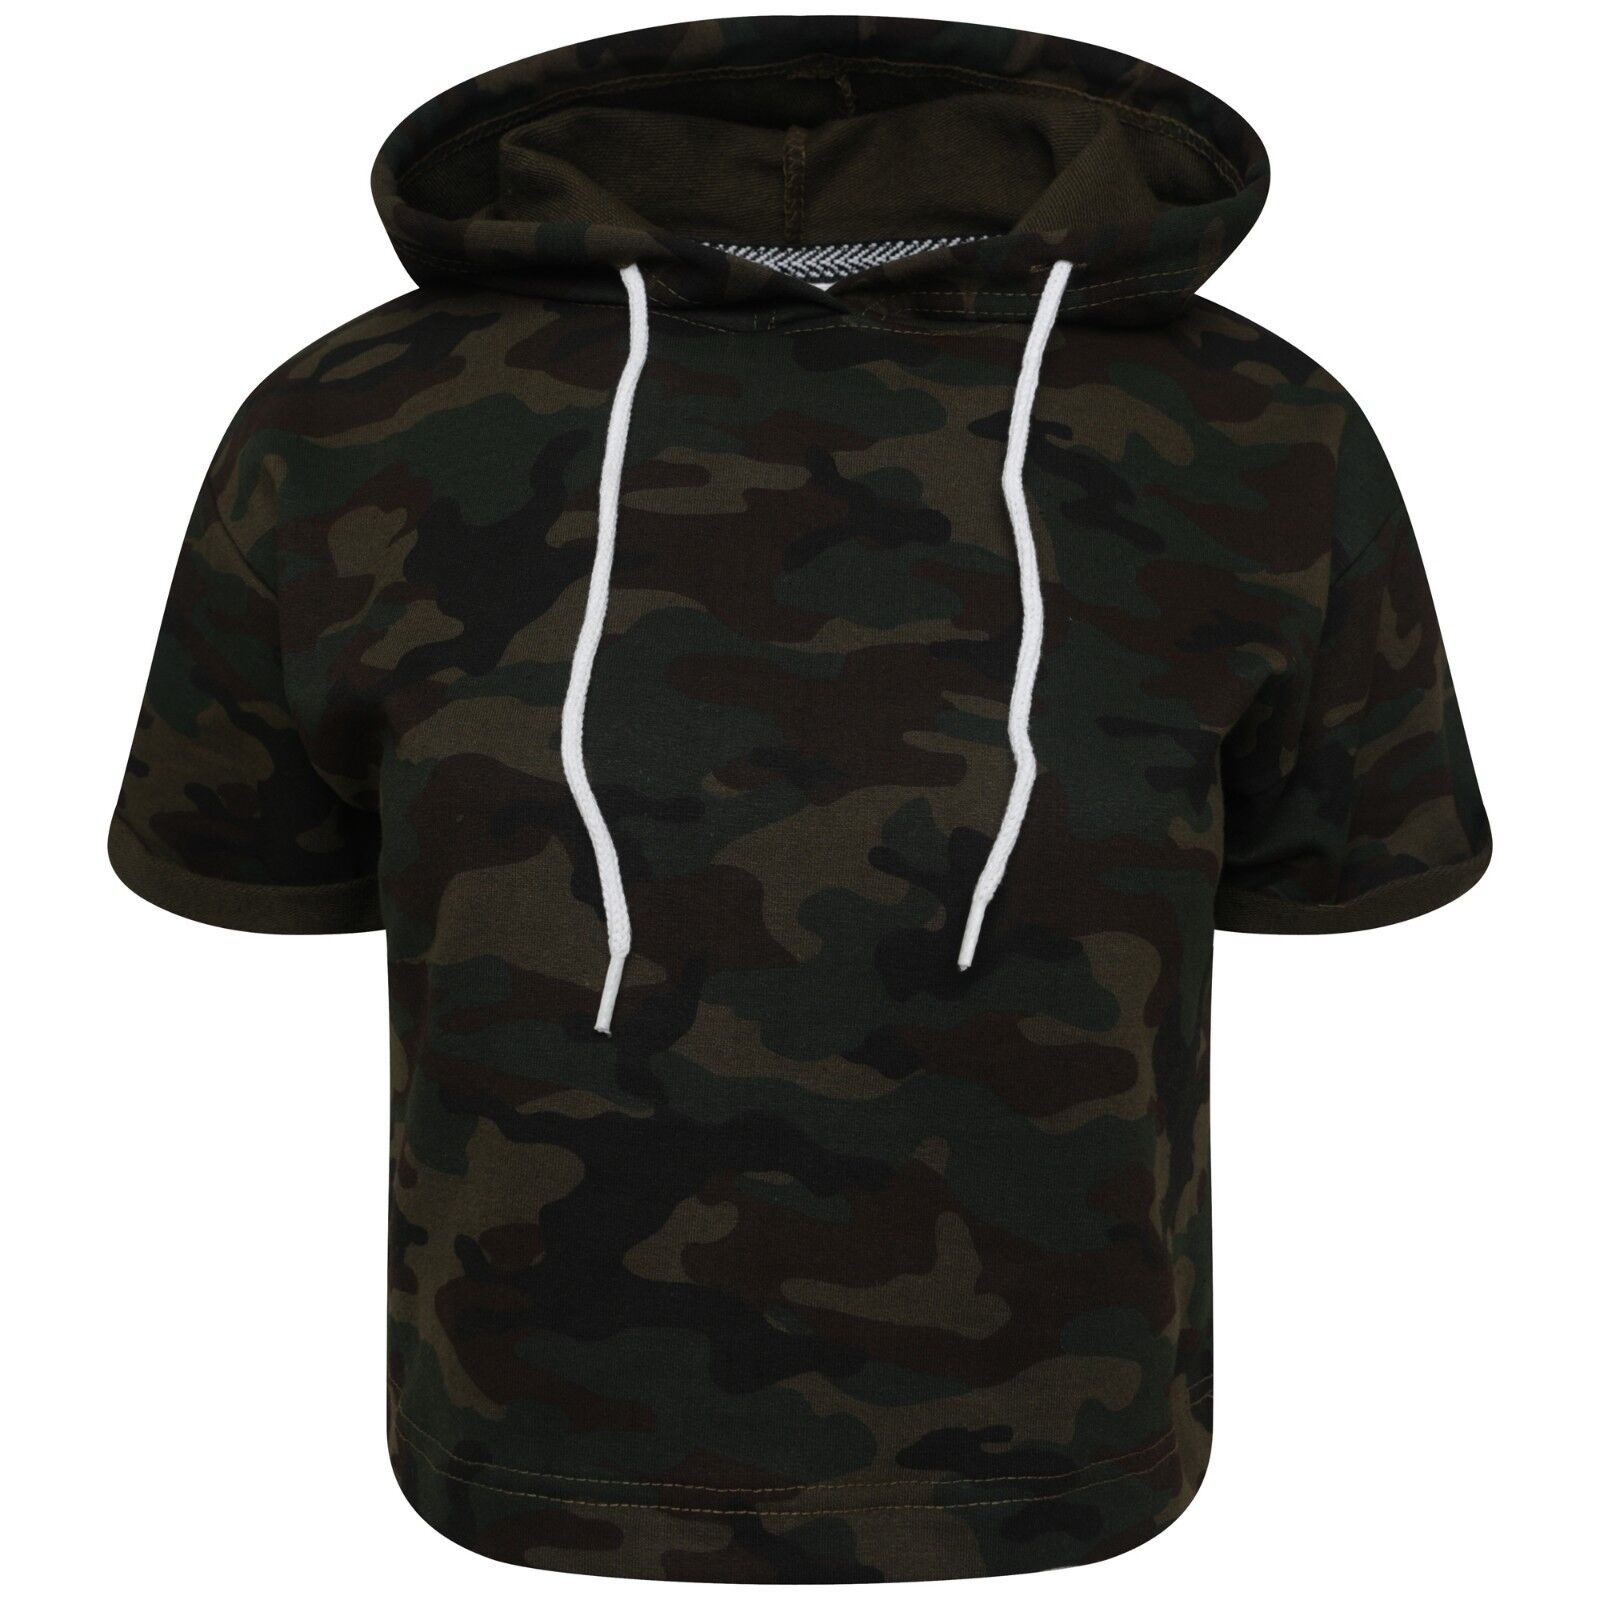 Womens Ladies Short Sleeve Hoodie Army Camouflage Hooded Crop Tops Gym  Outerwear dfb6f3a48